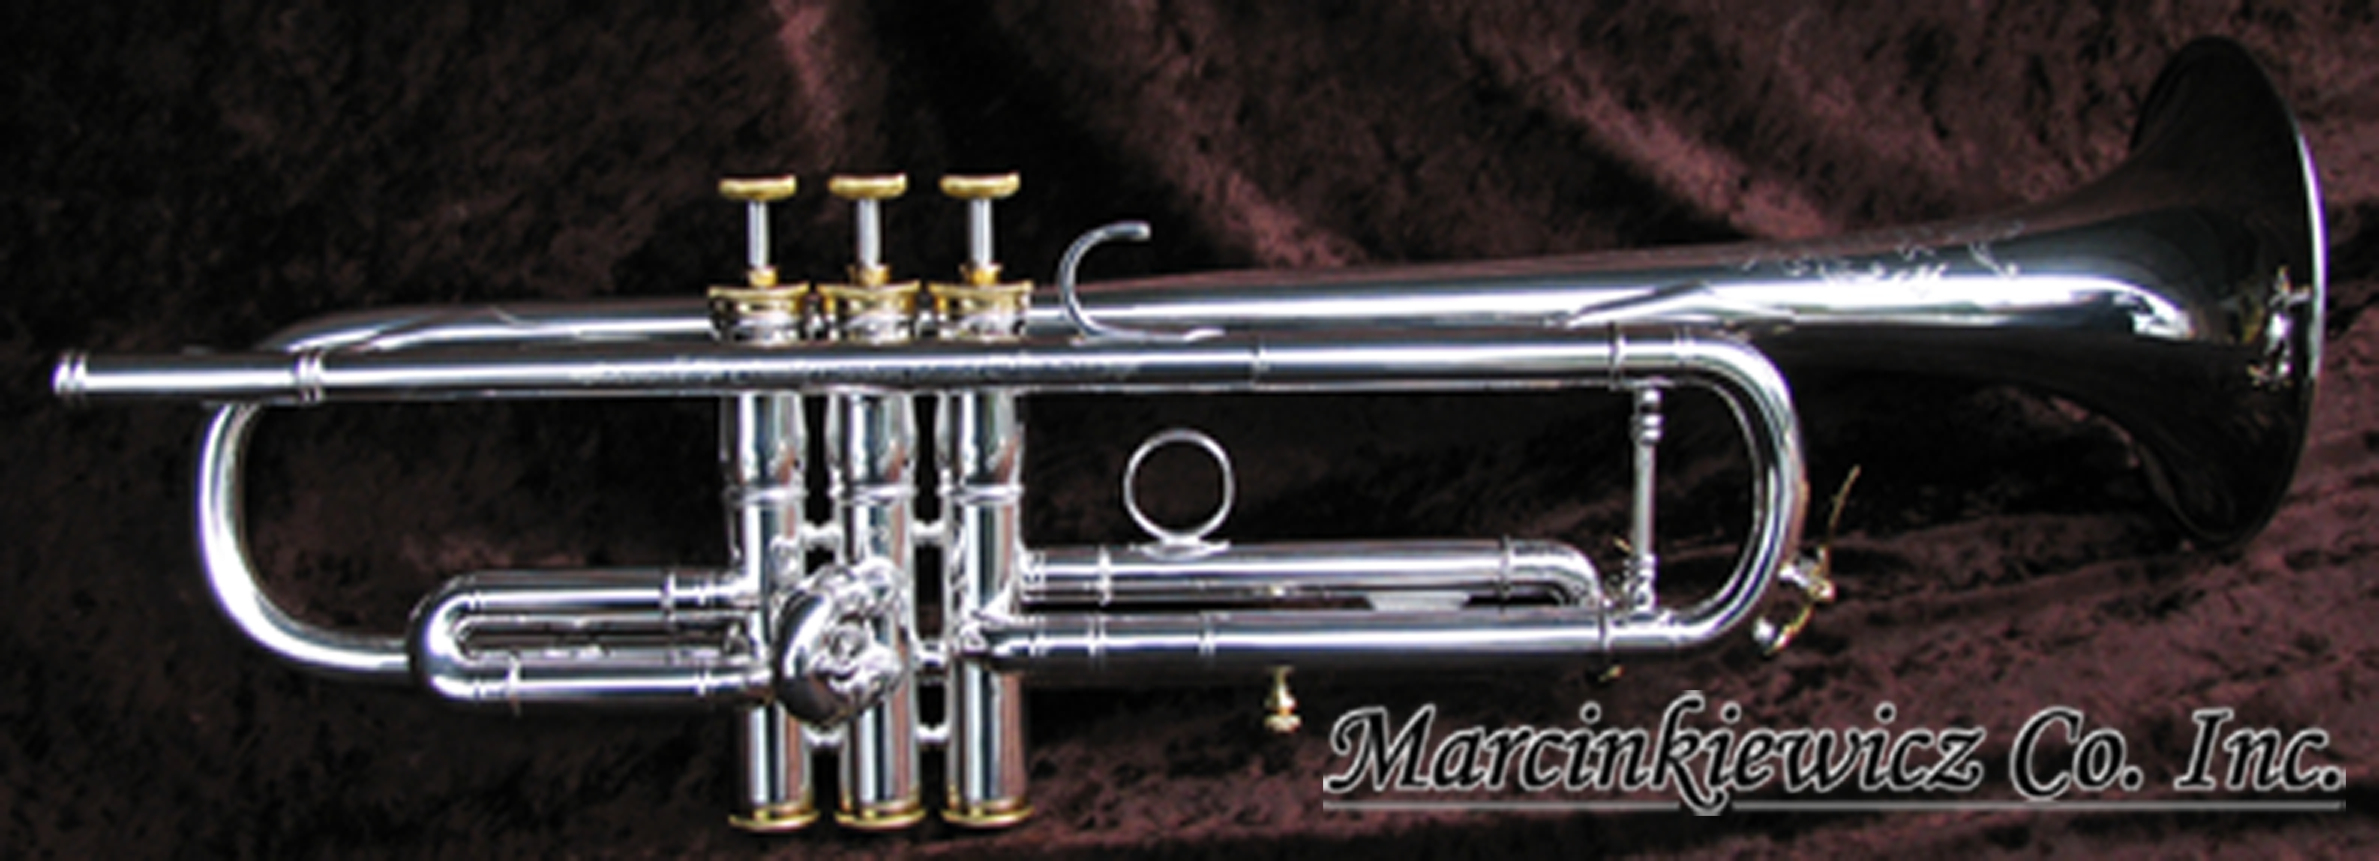 Claude Gordon Trumpets by Marcinkiewicz Co. Inc.